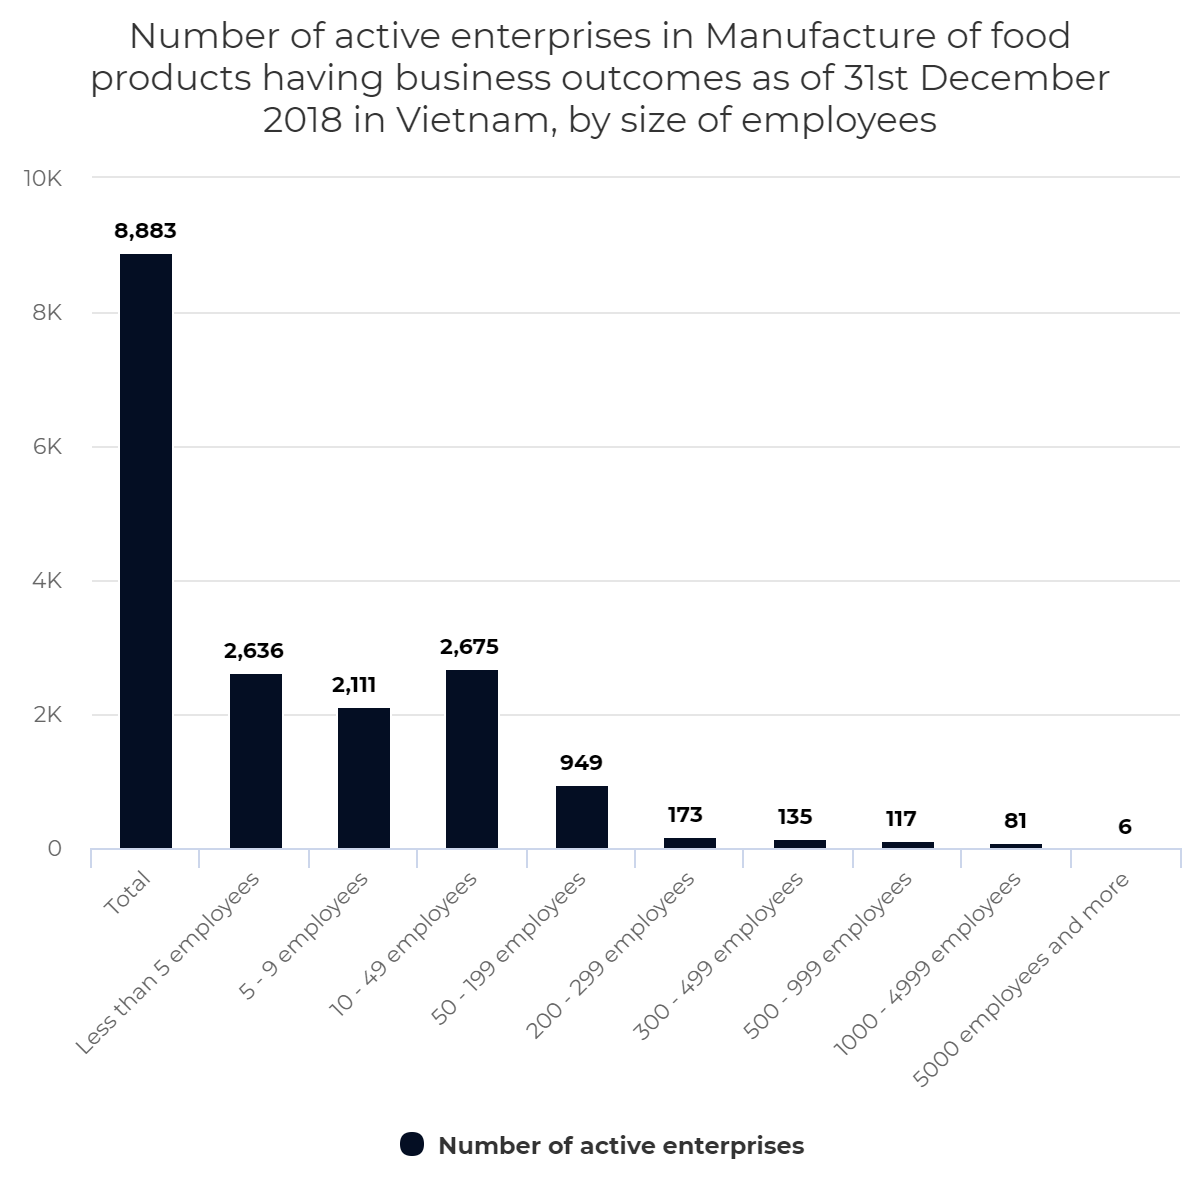 Number of active enterprises in Manufacture of food products, by size of employees, Vietnam, 2018